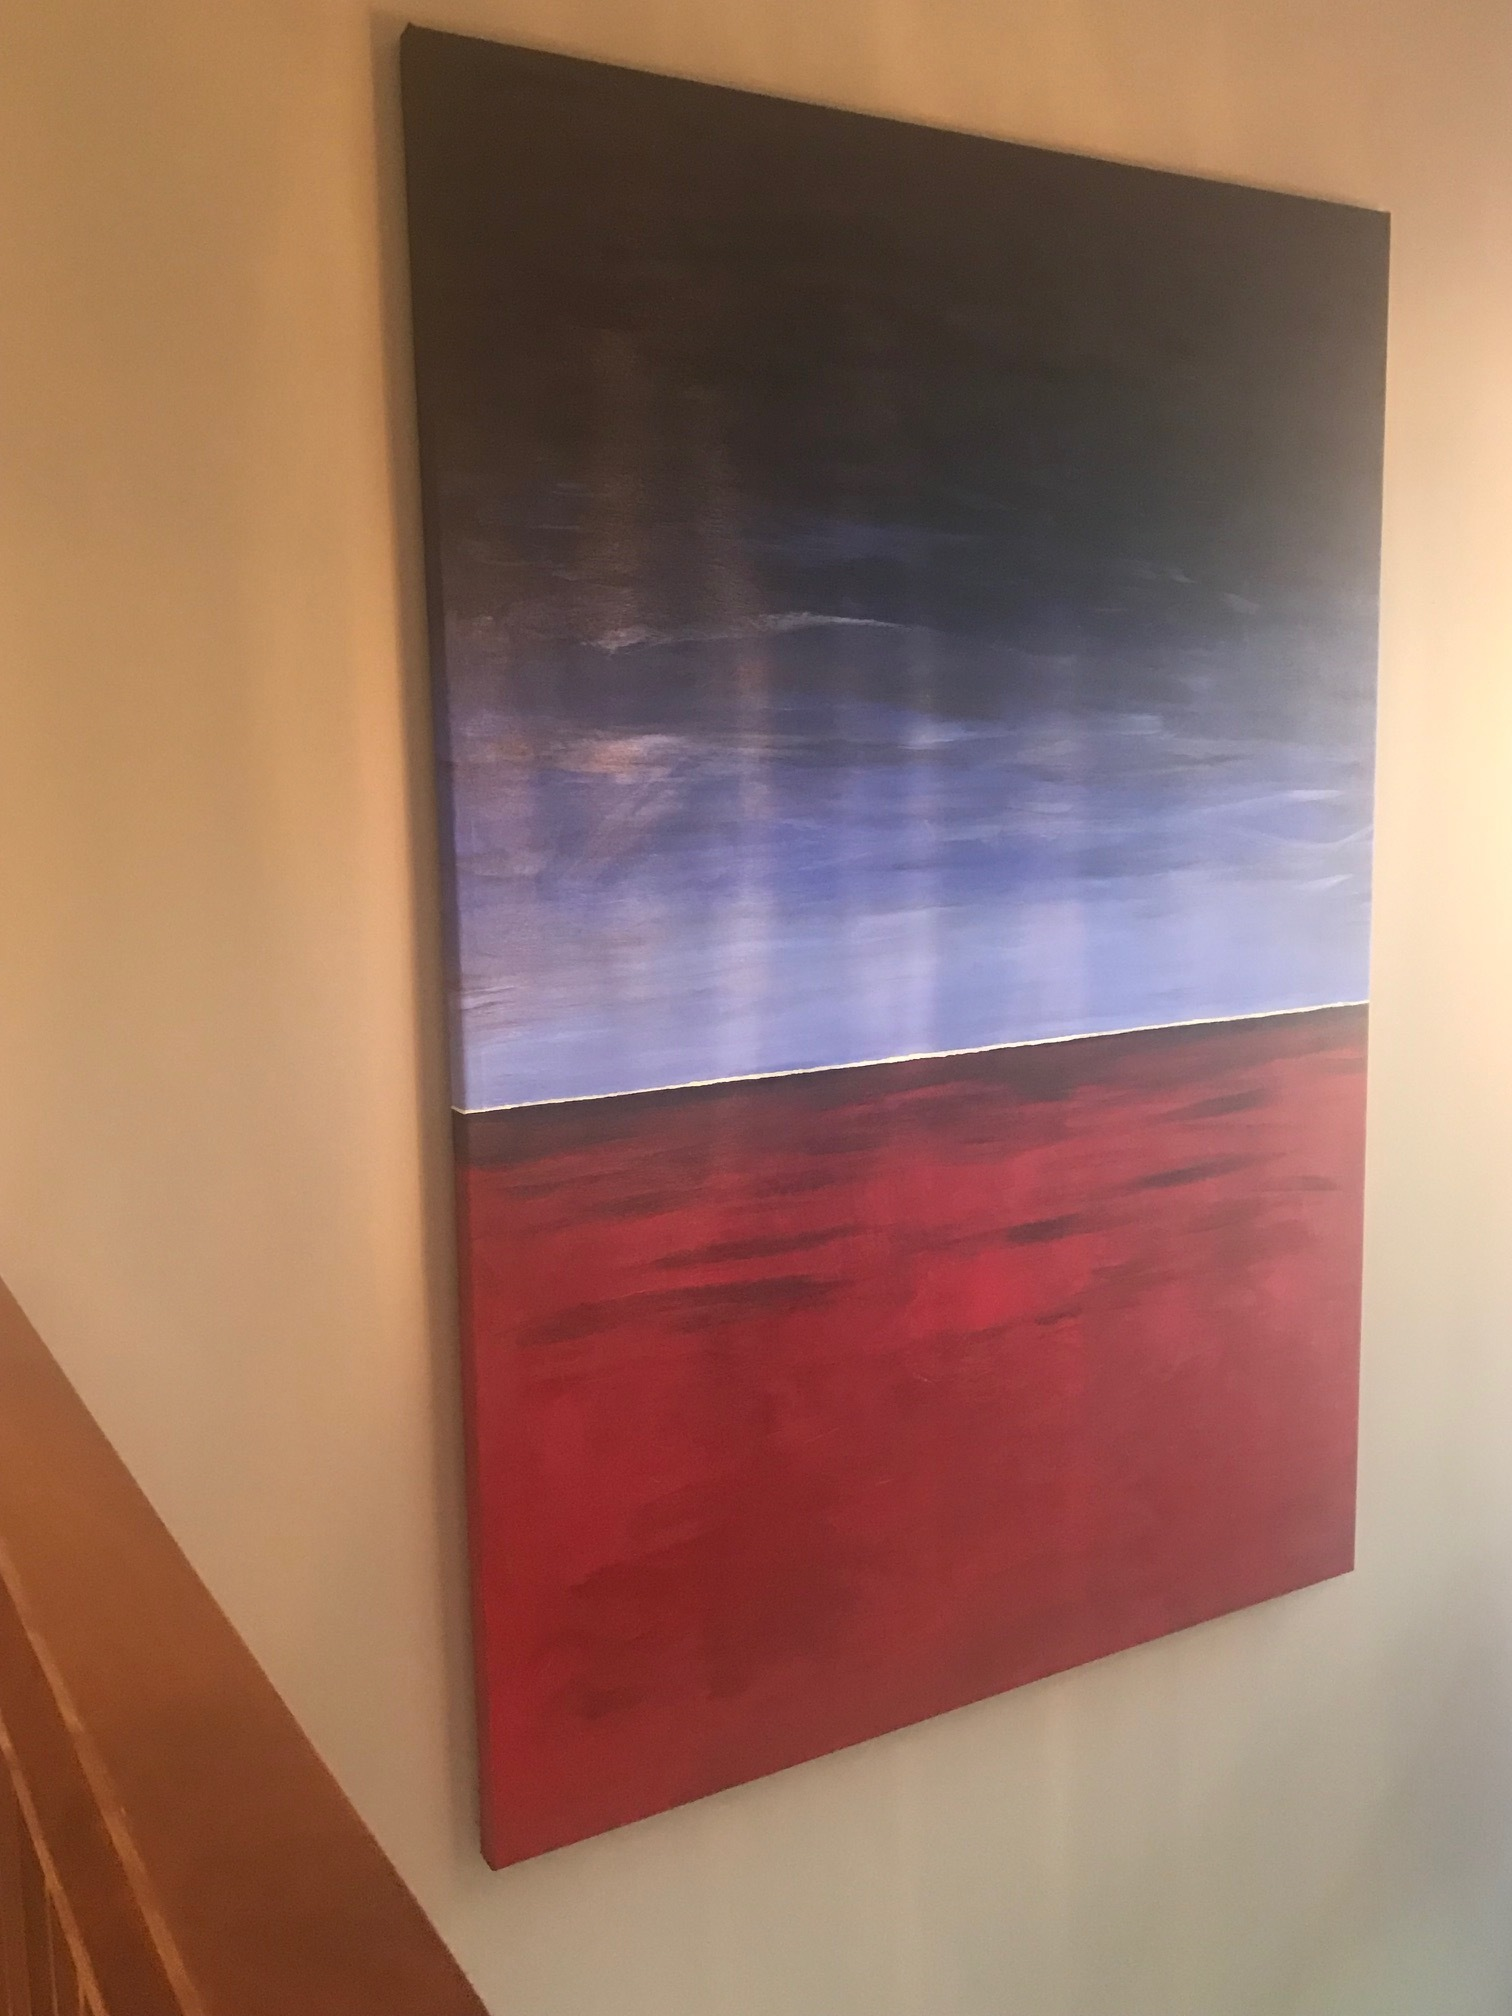 MODERN PAINTING BY THE FAMILY